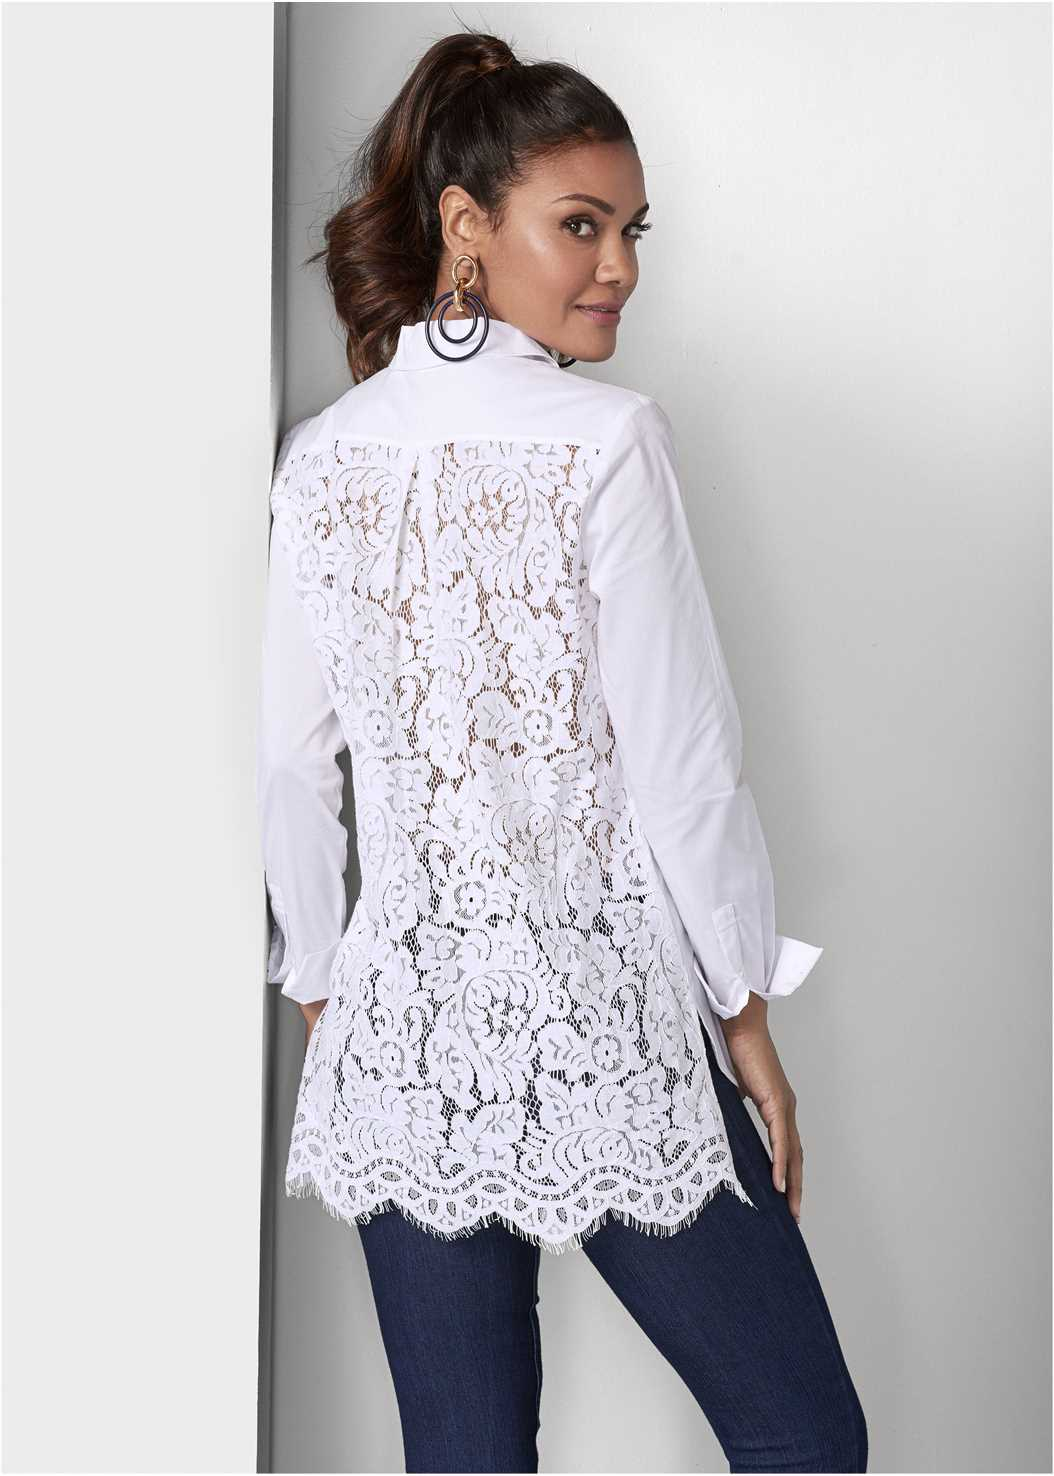 Lace Back Blouse,Mid Rise Slimming Stretch Jeggings,Lucite Detail Heels,Western Style Booties,Color Block Hoop Earrings